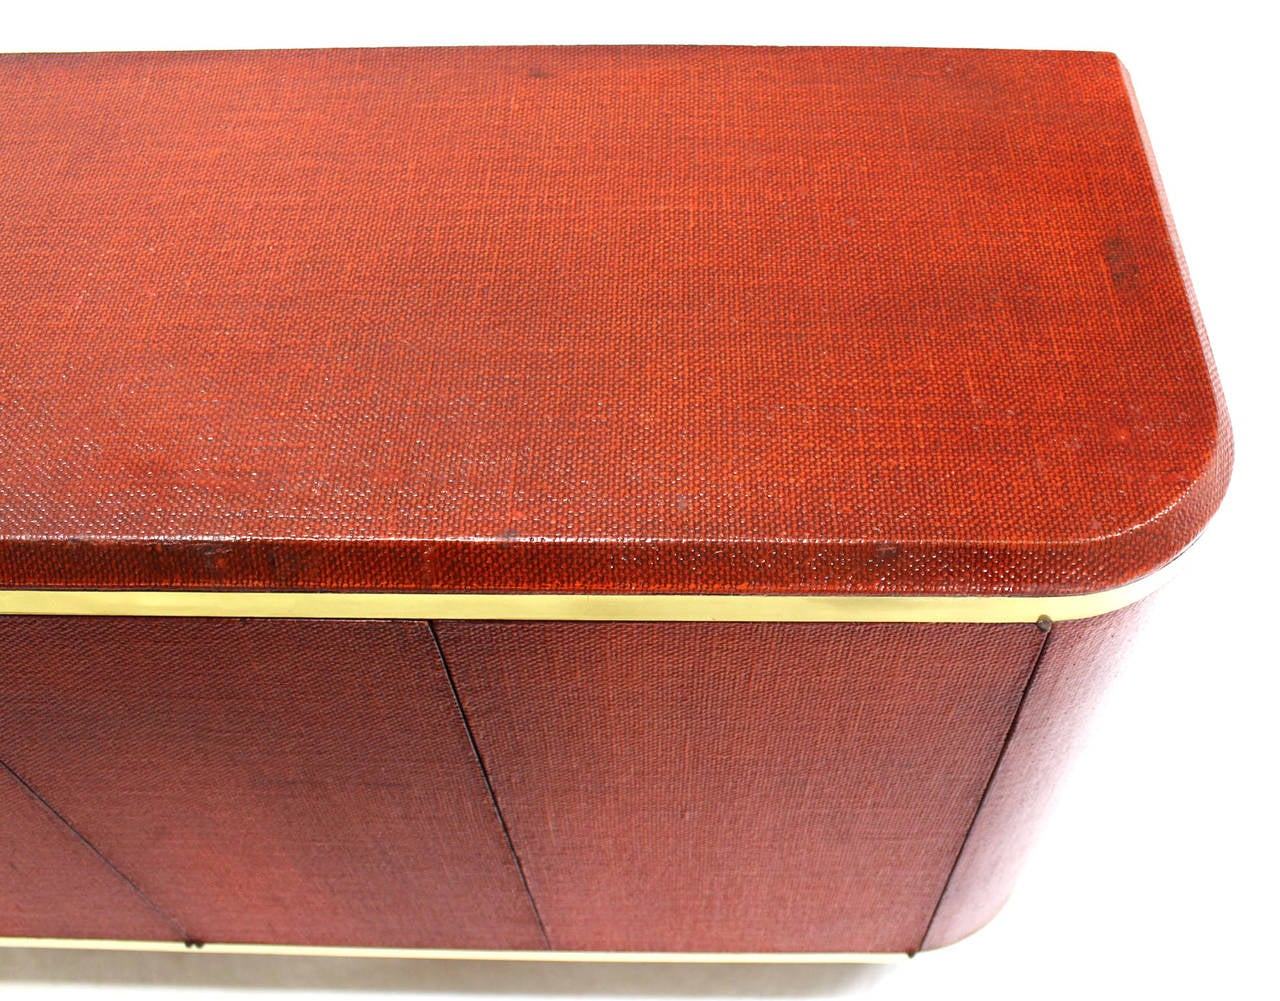 American Grass Cloth Brass Credenza or Cabinet or Sideboard Red Brick Color For Sale